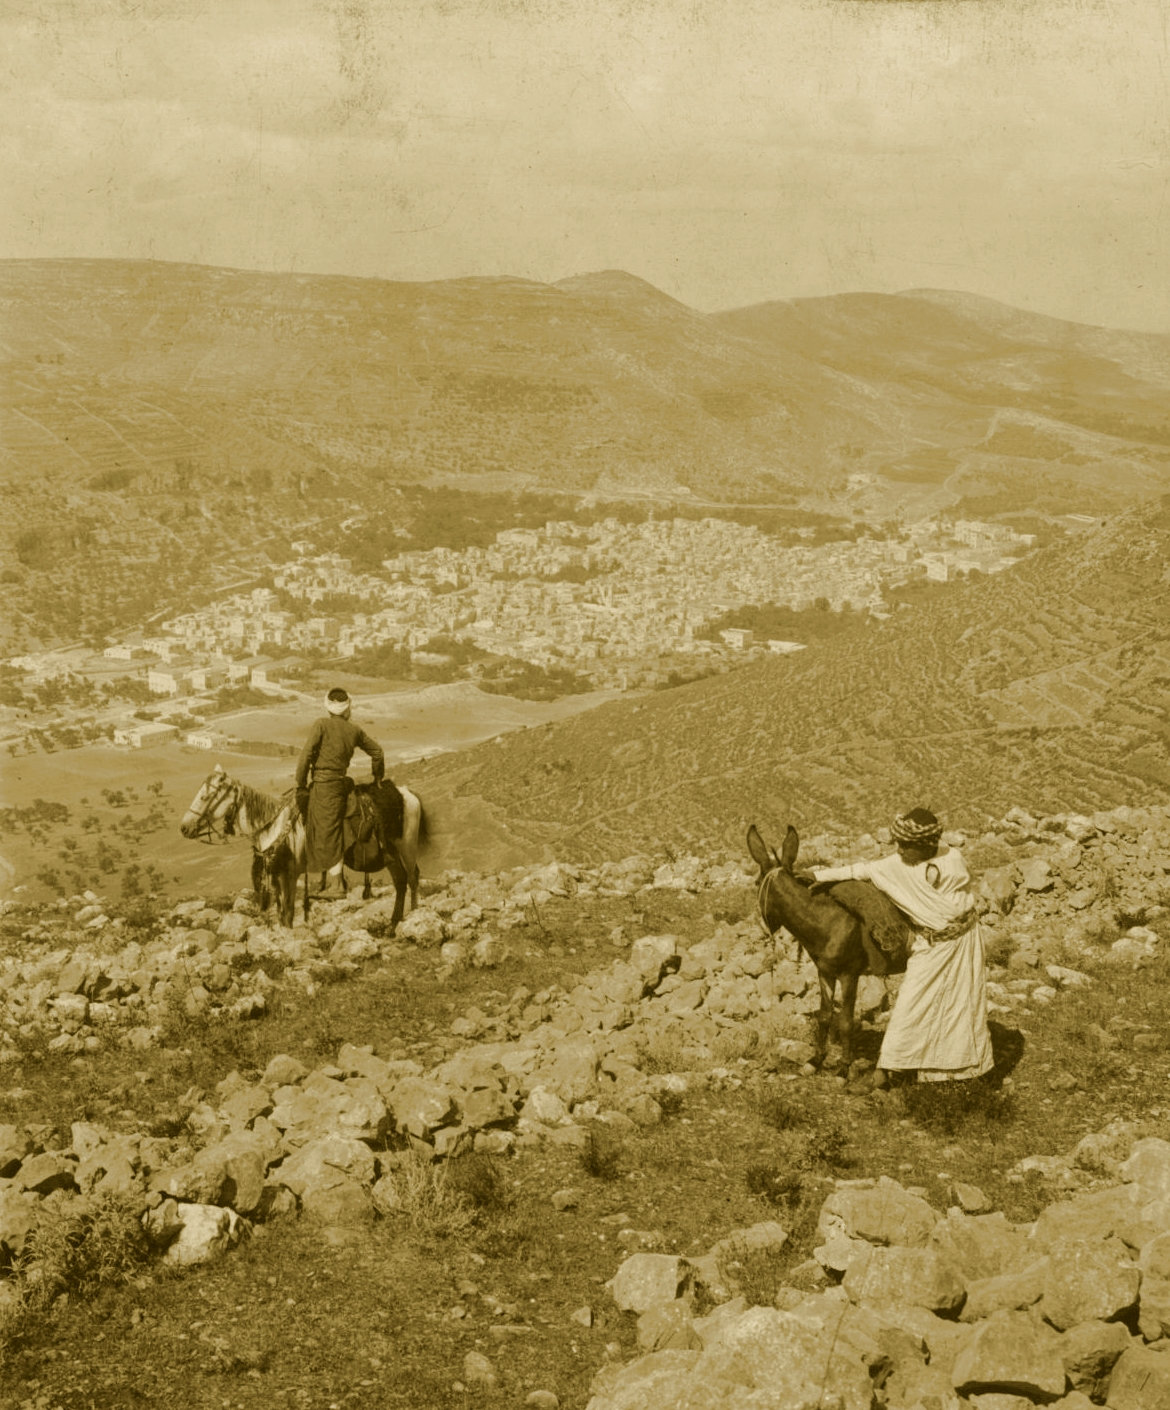 Nablus - نابلس : NABLUS - Late 19th, early 20th c. 90 - Looking south-west from Ebal